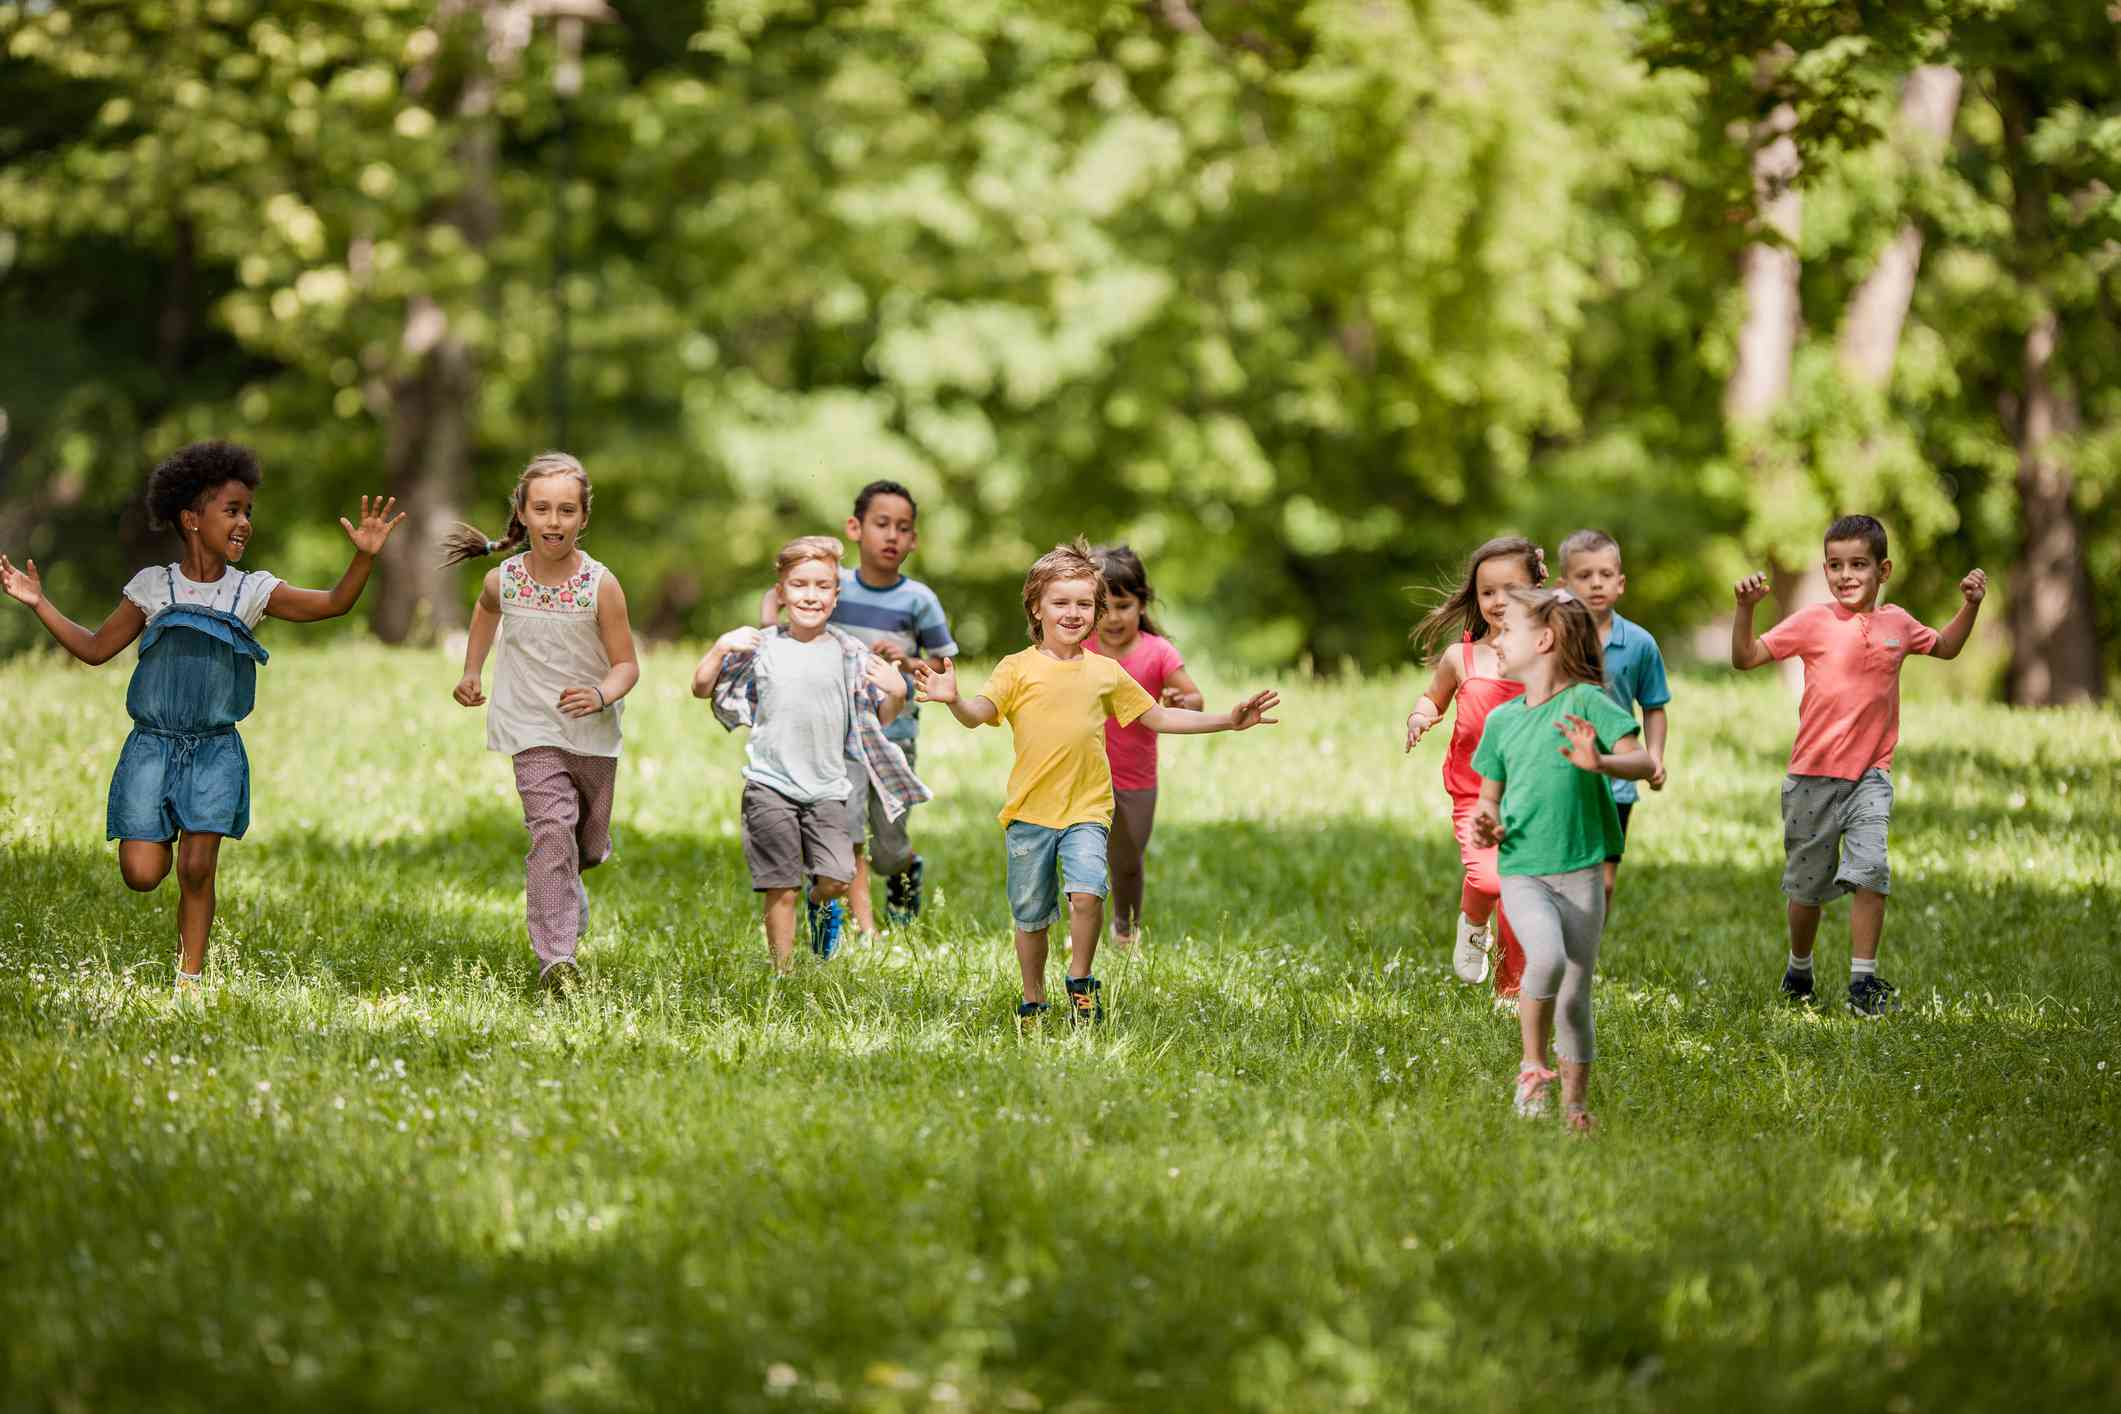 Carefree children having fun while running in spring day at the park.